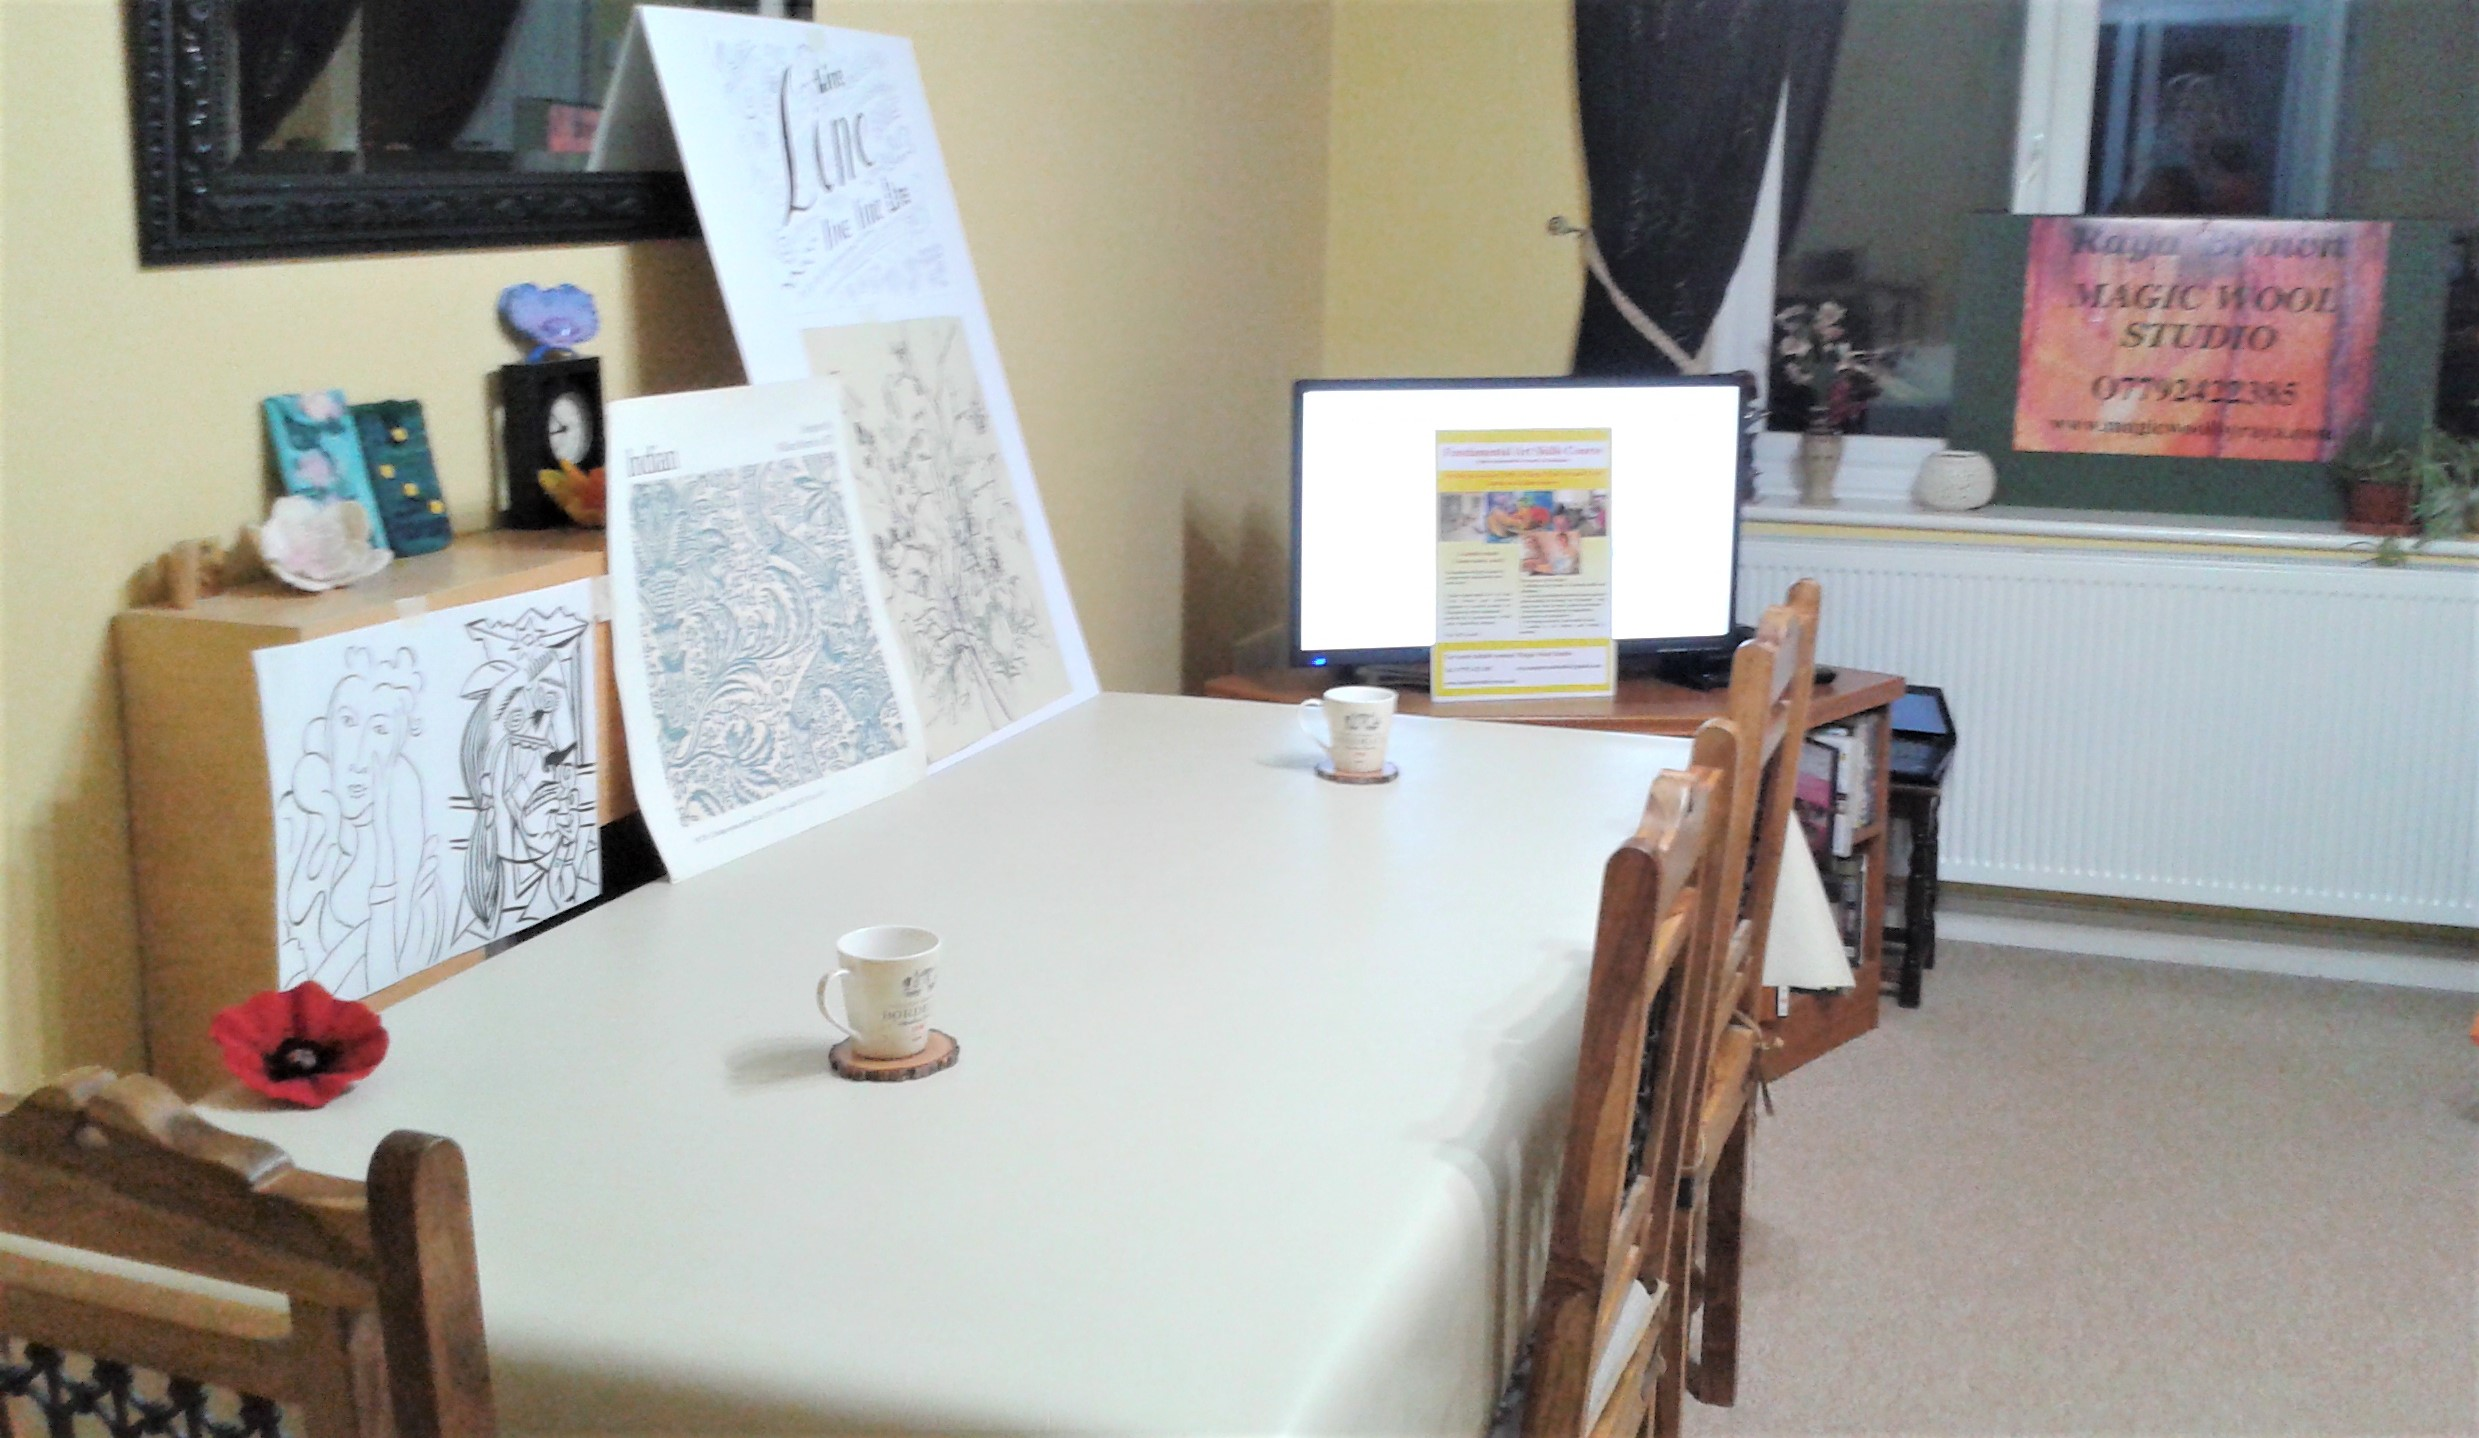 Magic Wool Studio is set up for the first class